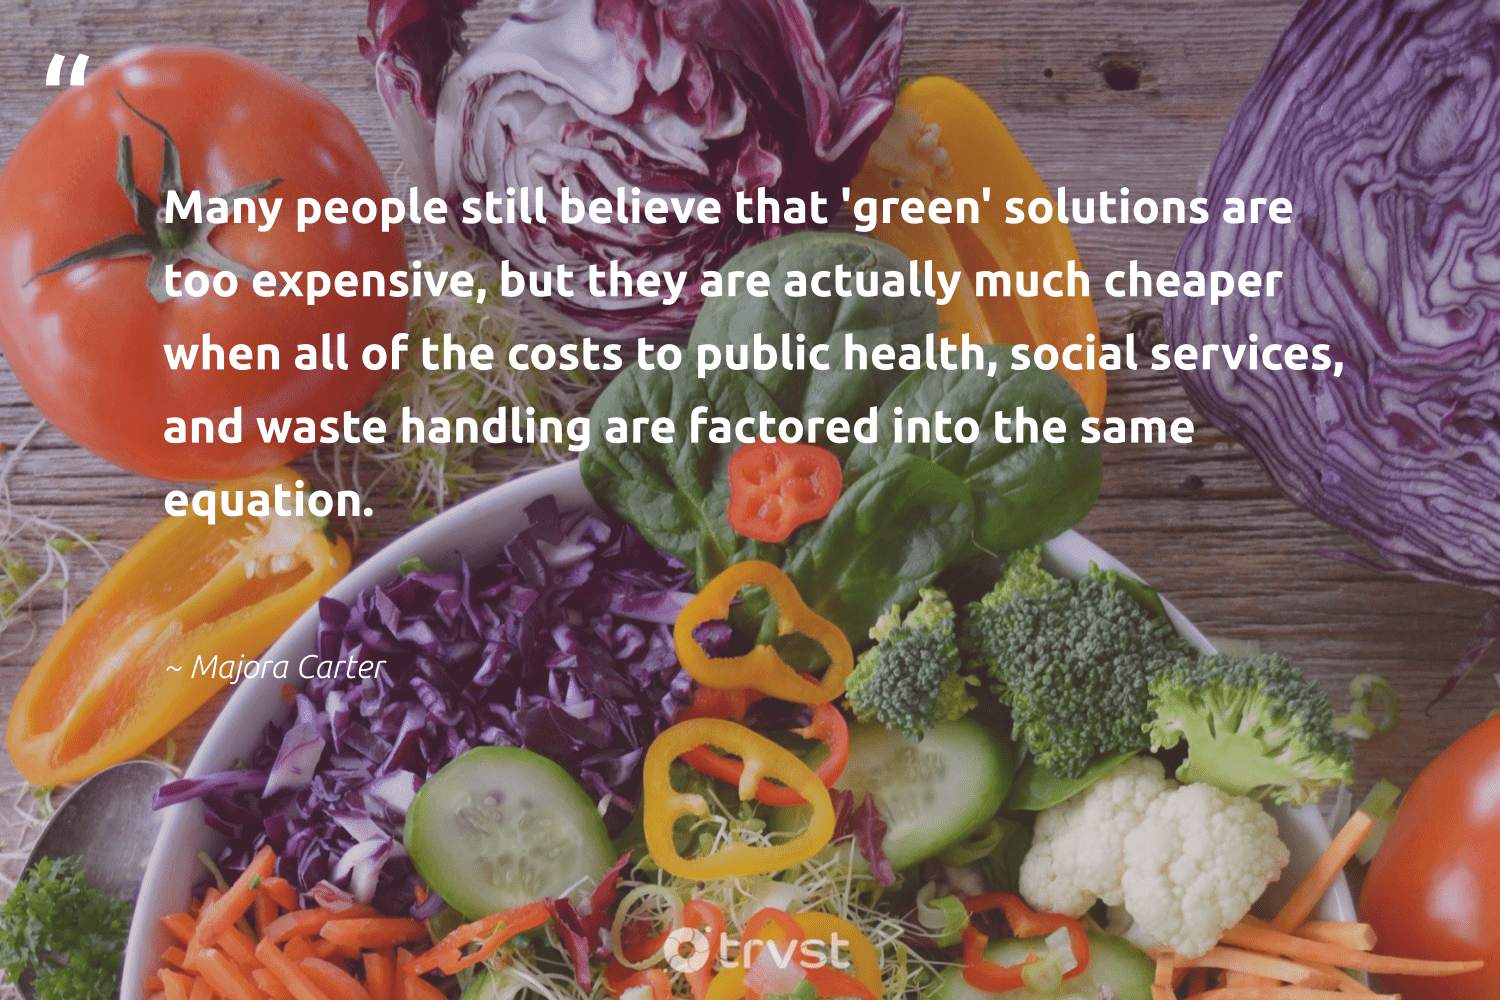 """""""Many people still believe that 'green' solutions are too expensive, but they are actually much cheaper when all of the costs to public health, social services, and waste handling are factored into the same equation.""""  - Majora Carter #trvst #quotes #waste #green #health #gogreen #bethechange #sustainability #ecoconscious #fashion #beinspired #sustainable"""